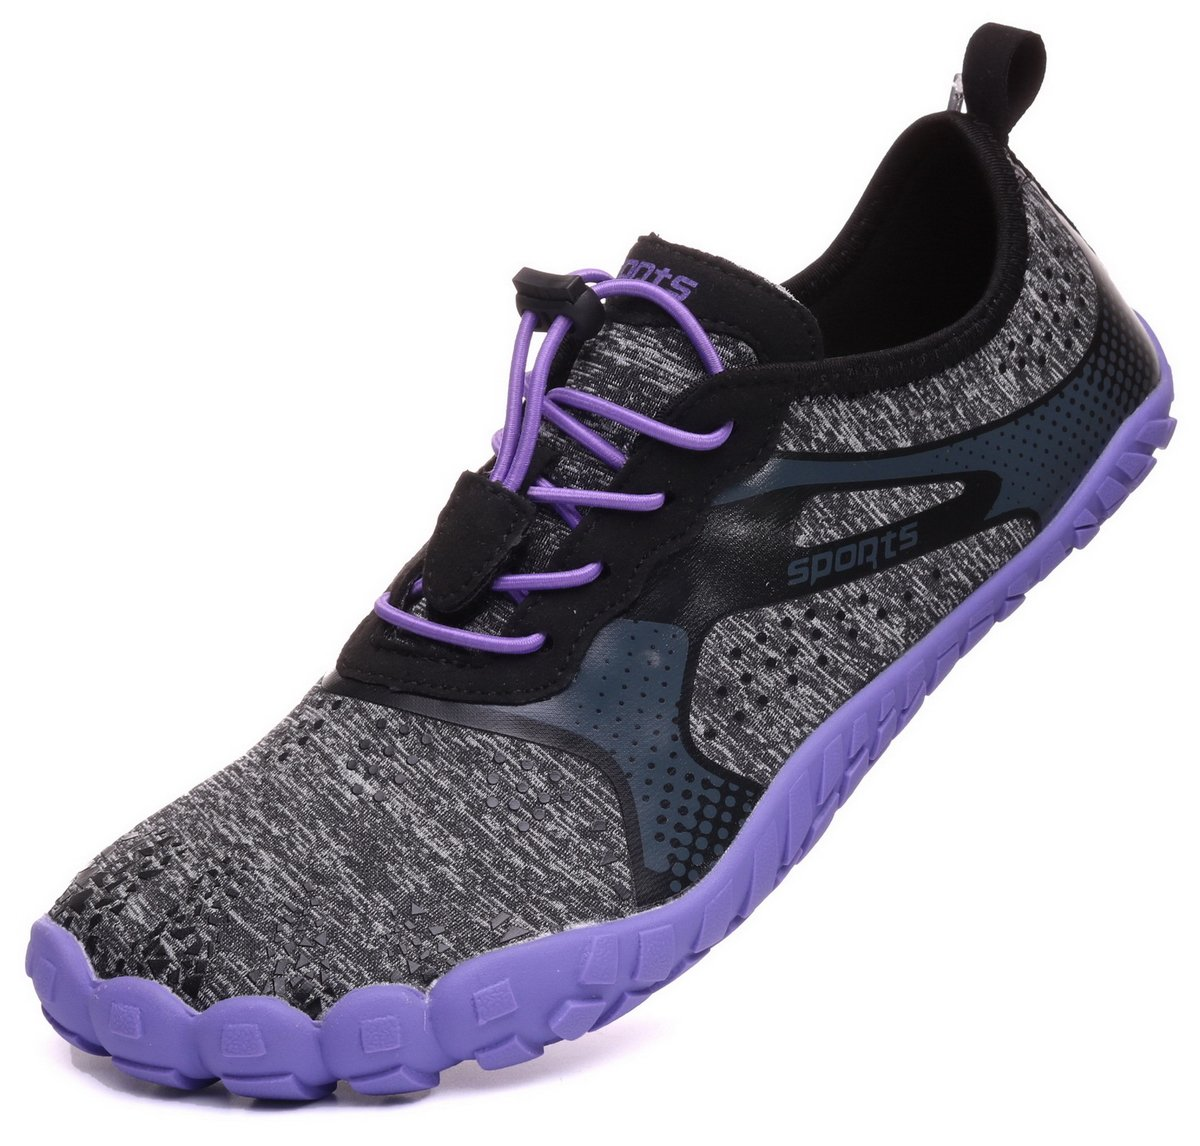 WHITIN Unisex Barefoot Shoes for Water Activities and Walking Jogging B07DBBMQK4 10.5 US Women's / 9 US Men's|Purple